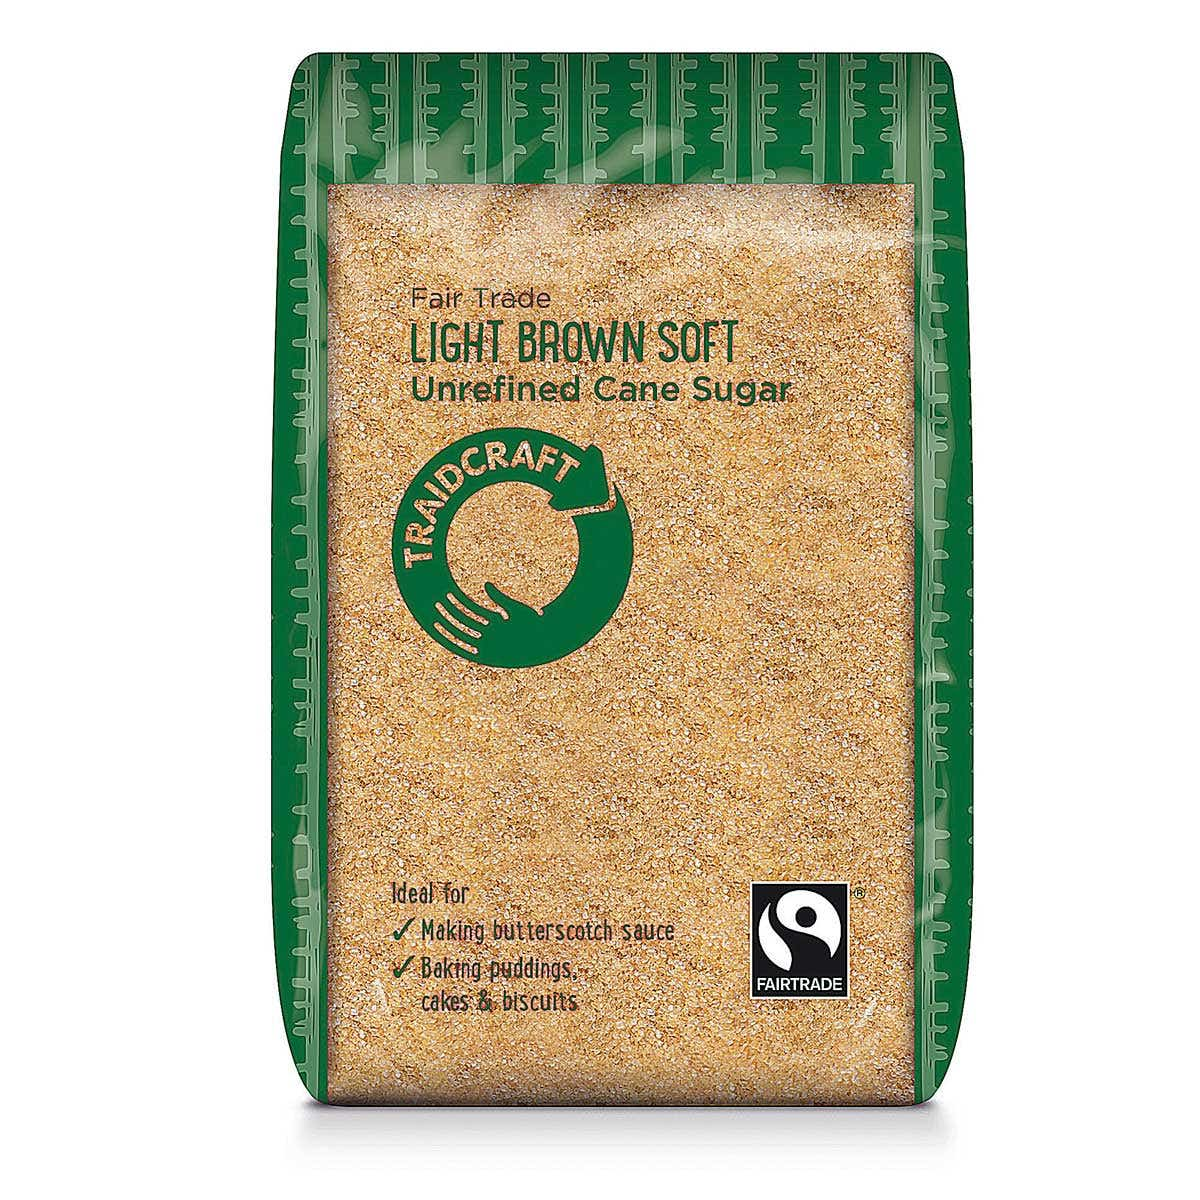 Traidcraft Light Brown Soft Sugar (500g)